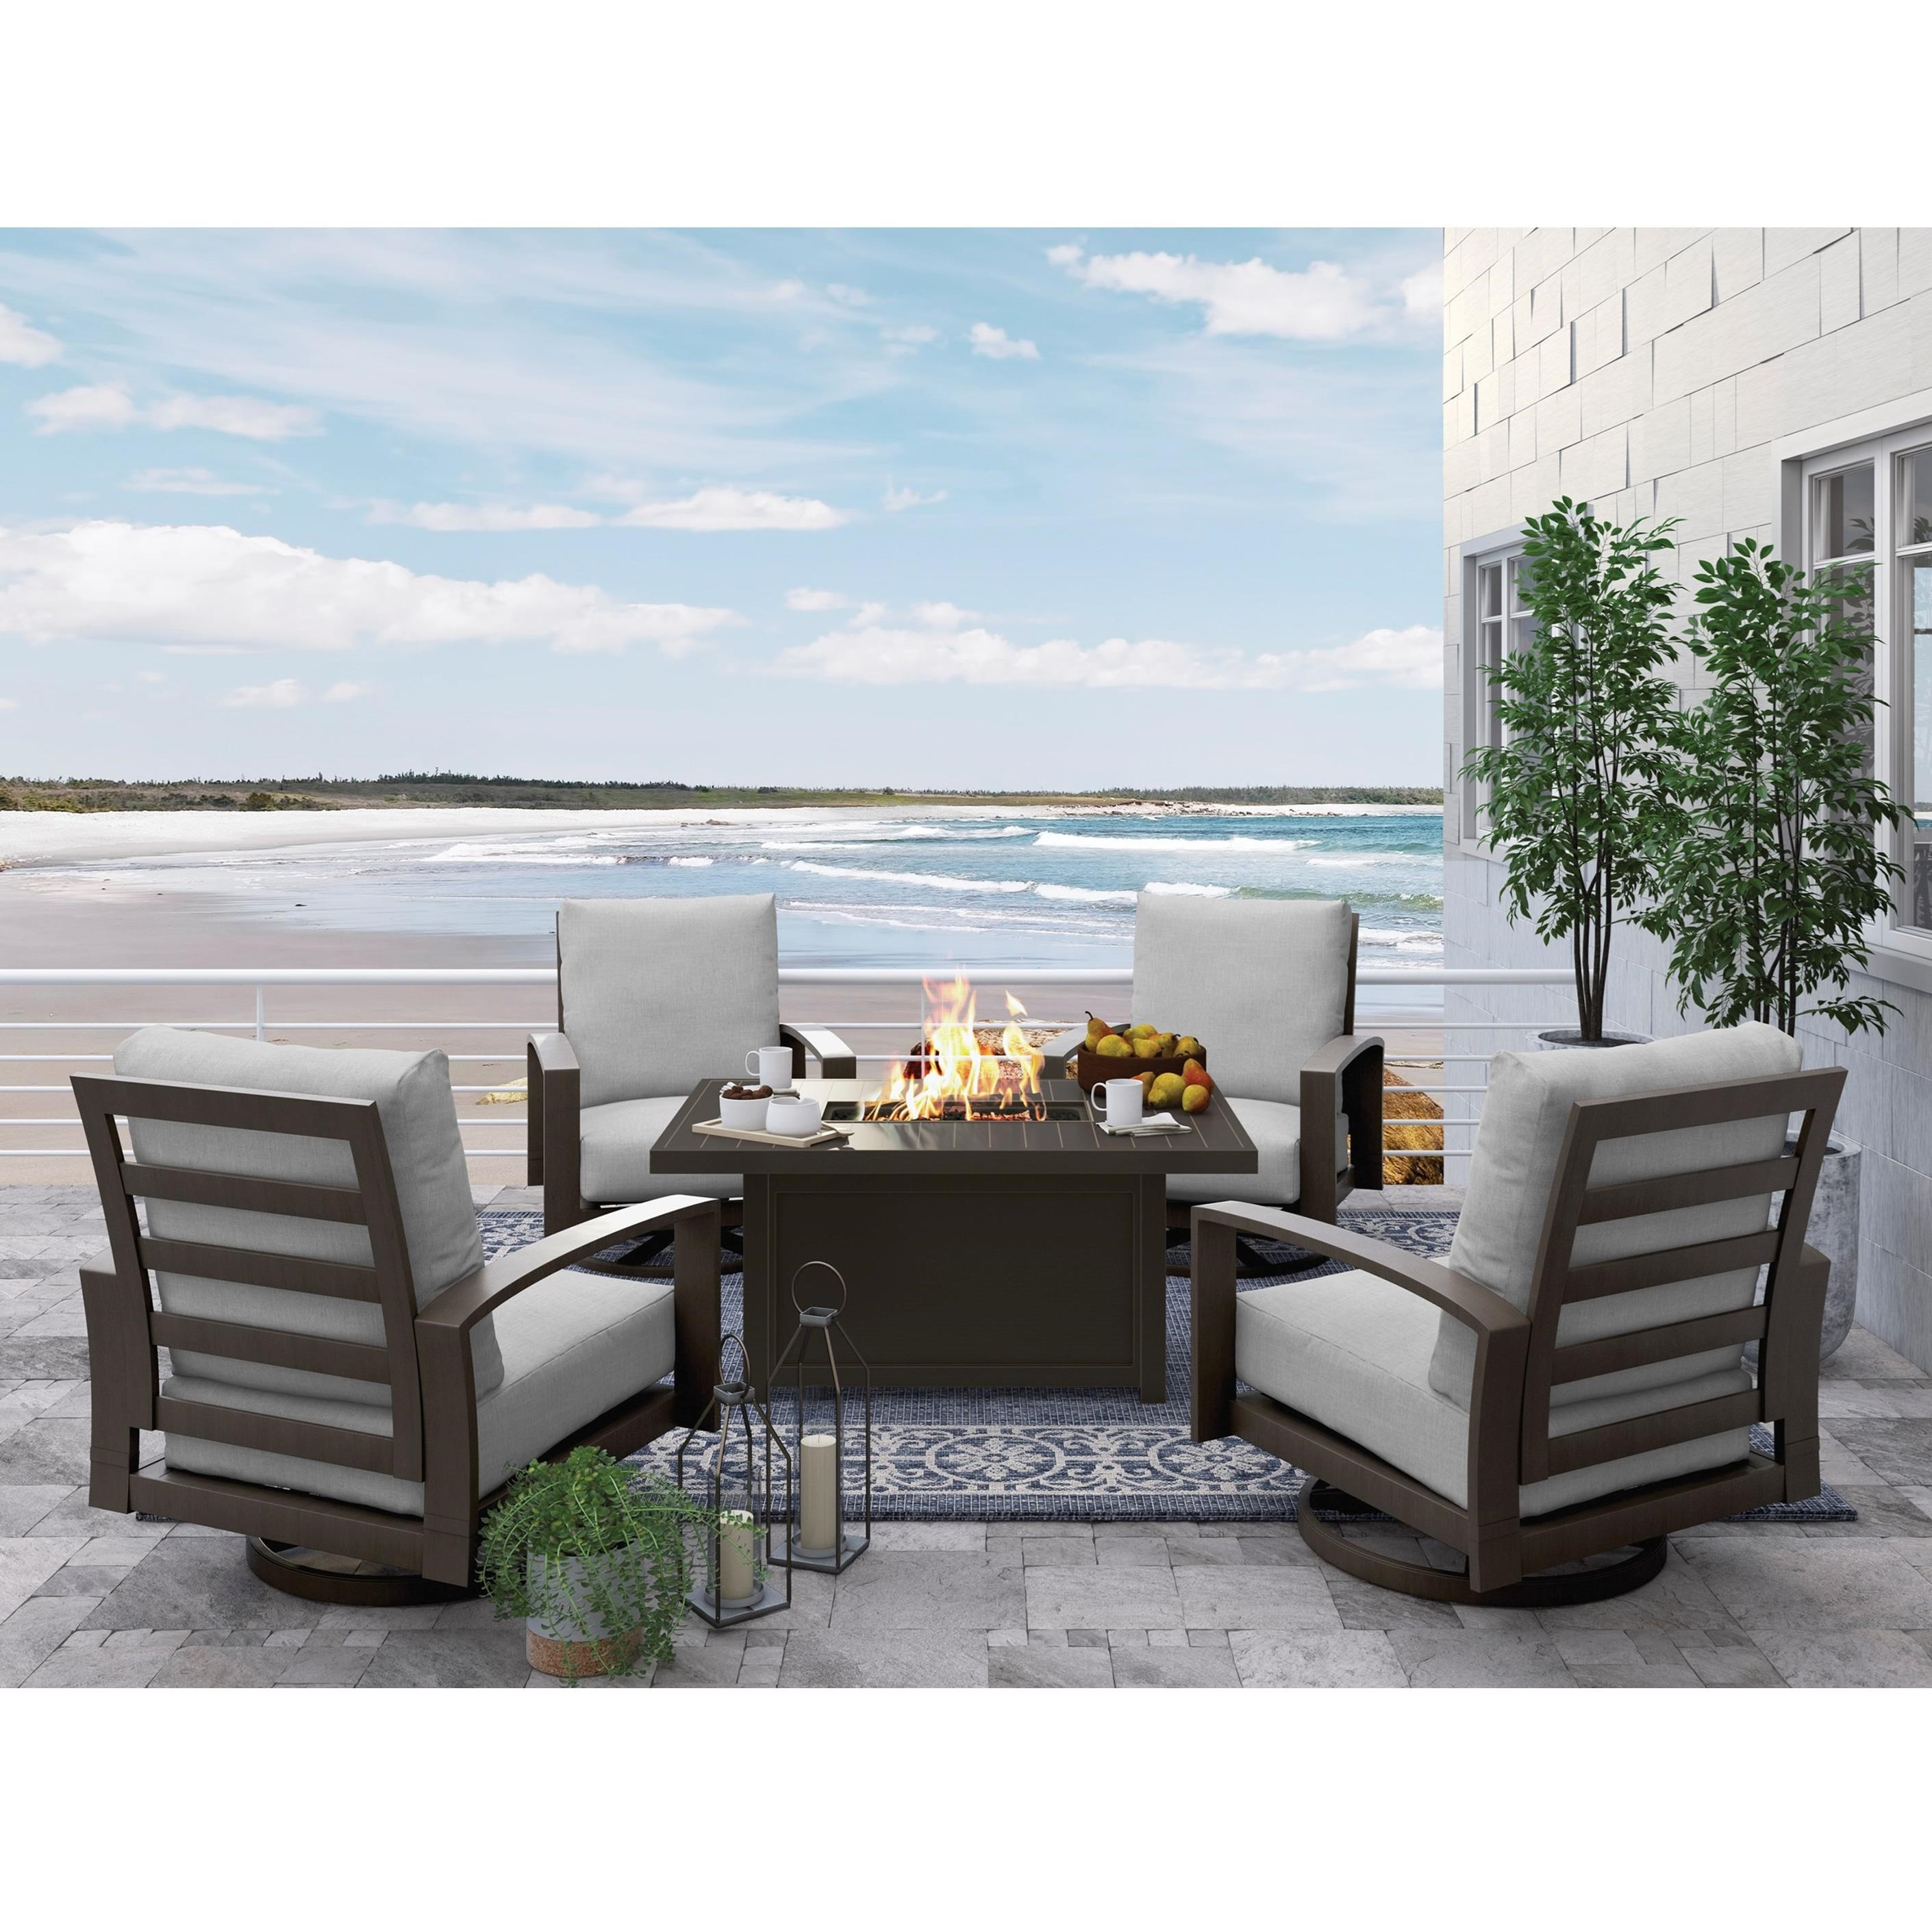 Ashley (Signature Design) Cordova Reef Conversation Set - Item Number: P645-775+2x821